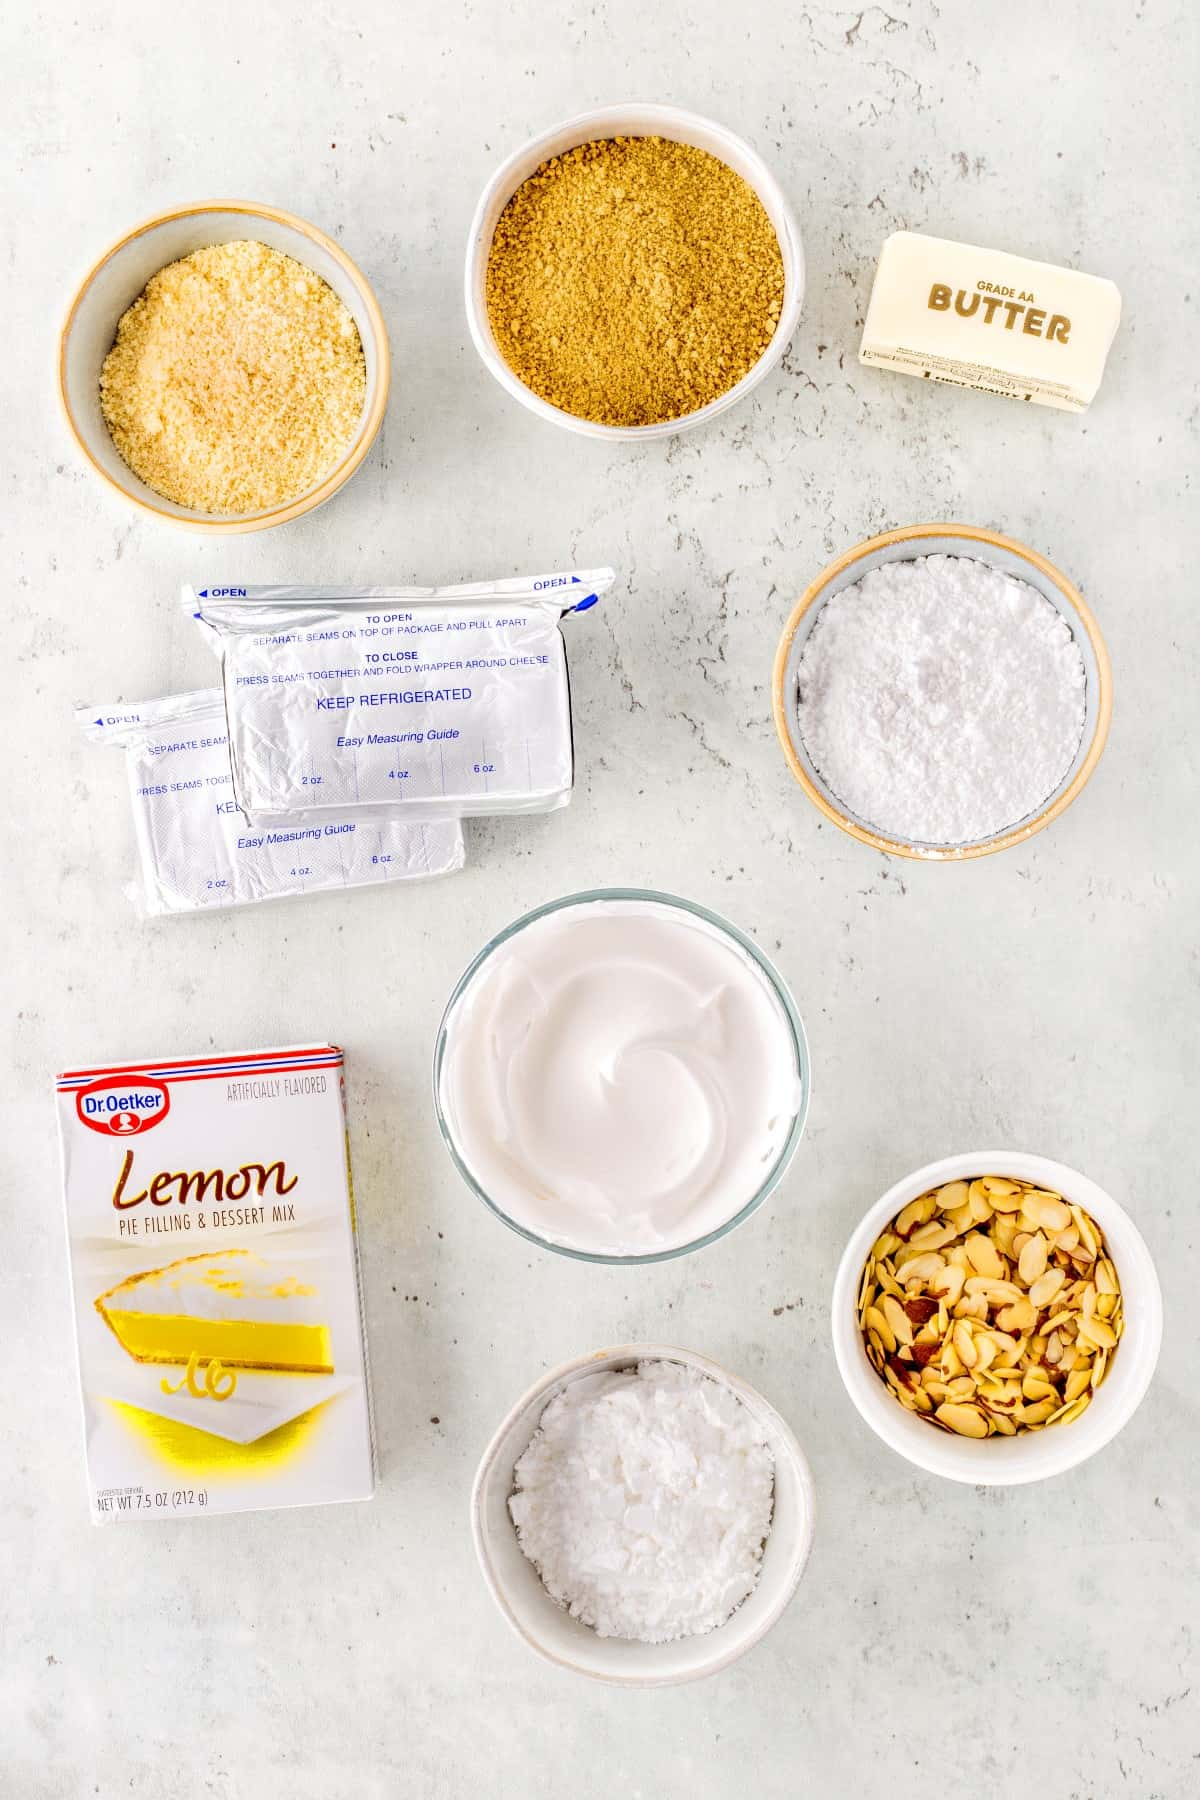 Ingredients to make lemon lush dessert recipe